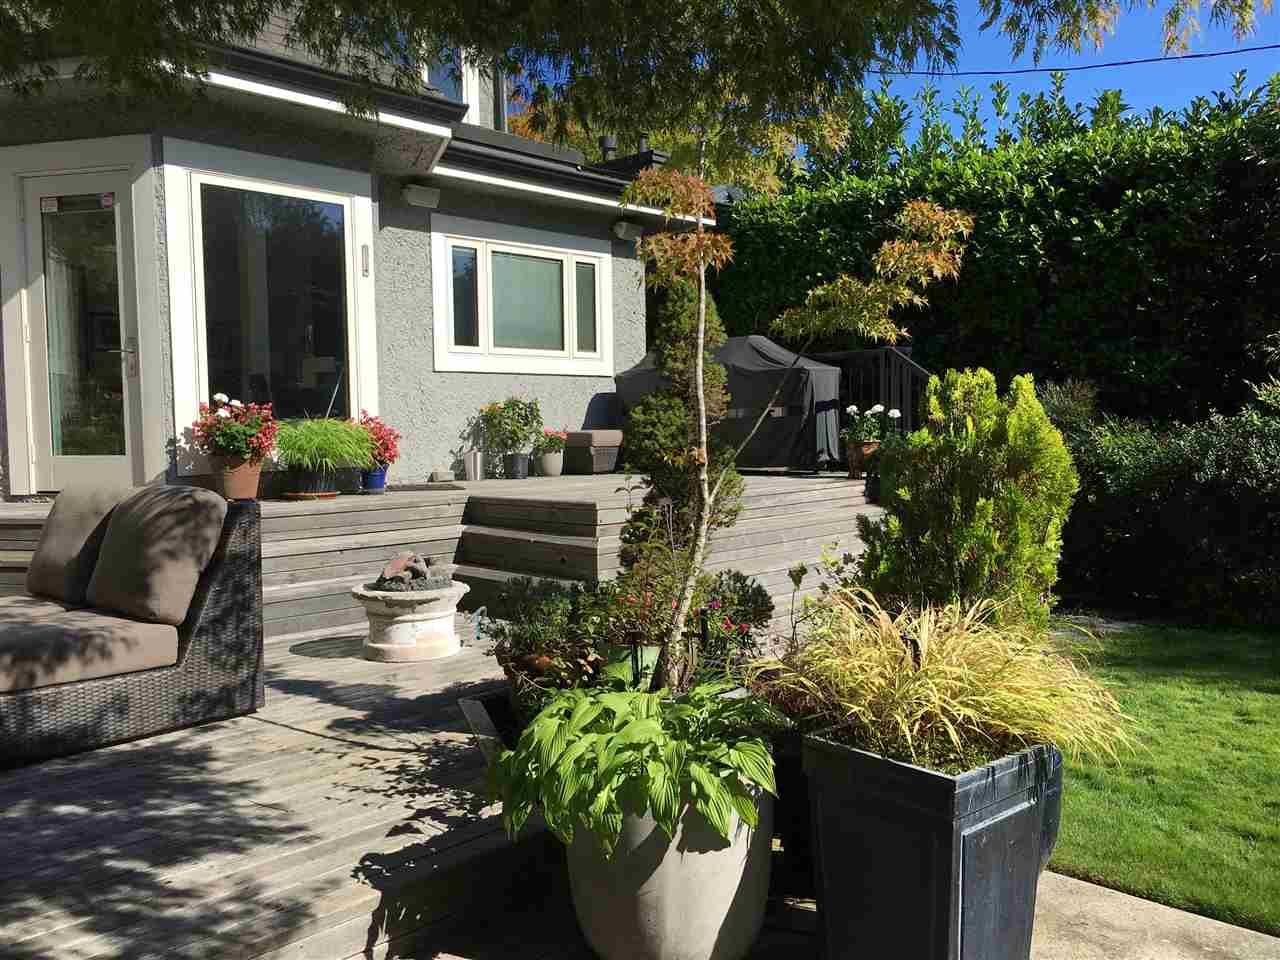 Photo 18: Photos: 1268 NANTON Avenue in Vancouver: Shaughnessy House for sale (Vancouver West)  : MLS®# R2209391